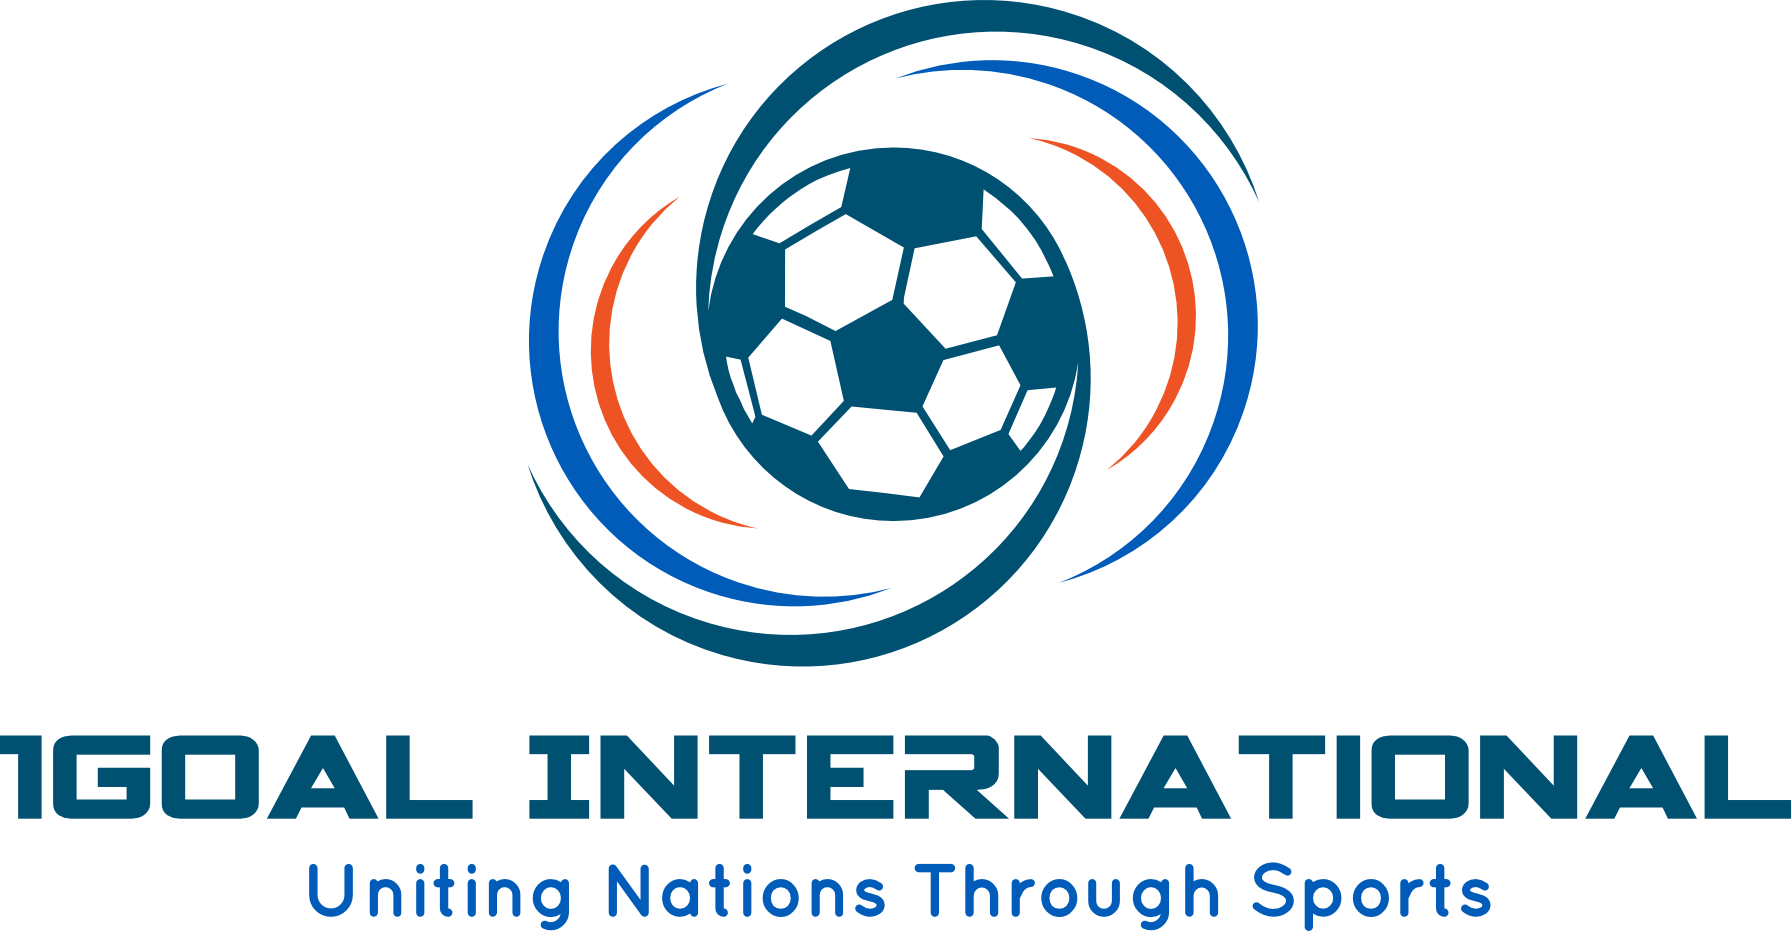 1GOAL INTERNATIONAL - Uniting Cultures Through Sports